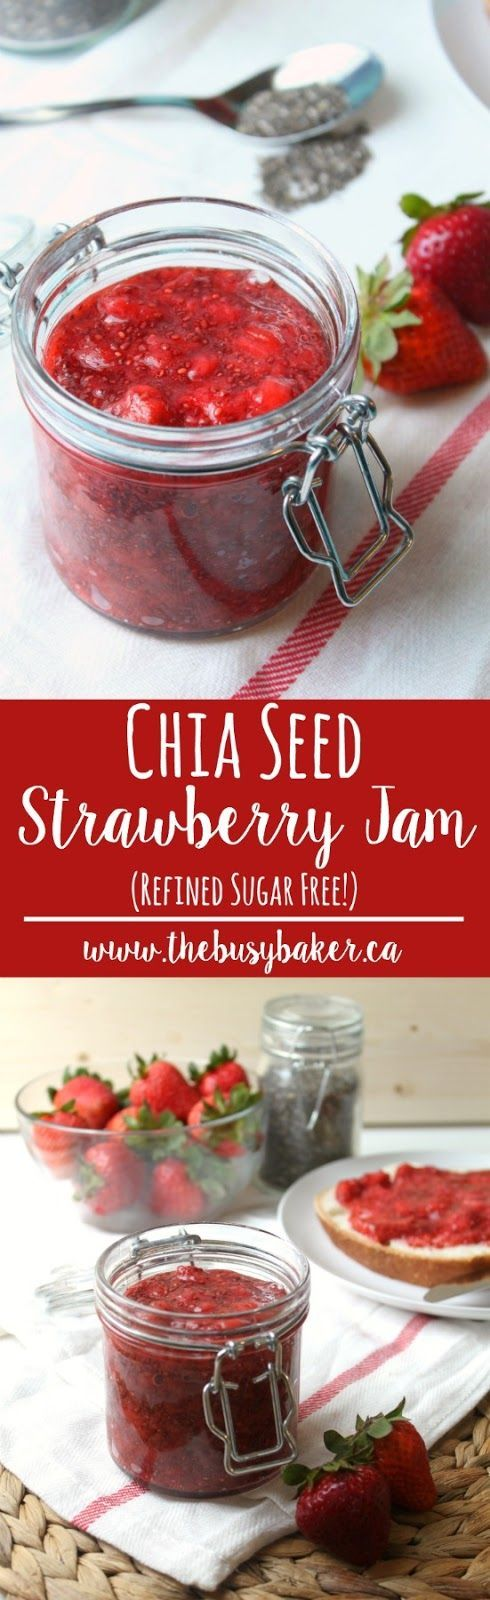 Homemade Chia Seed Strawberry Jam recipe from thebusybaker.ca!